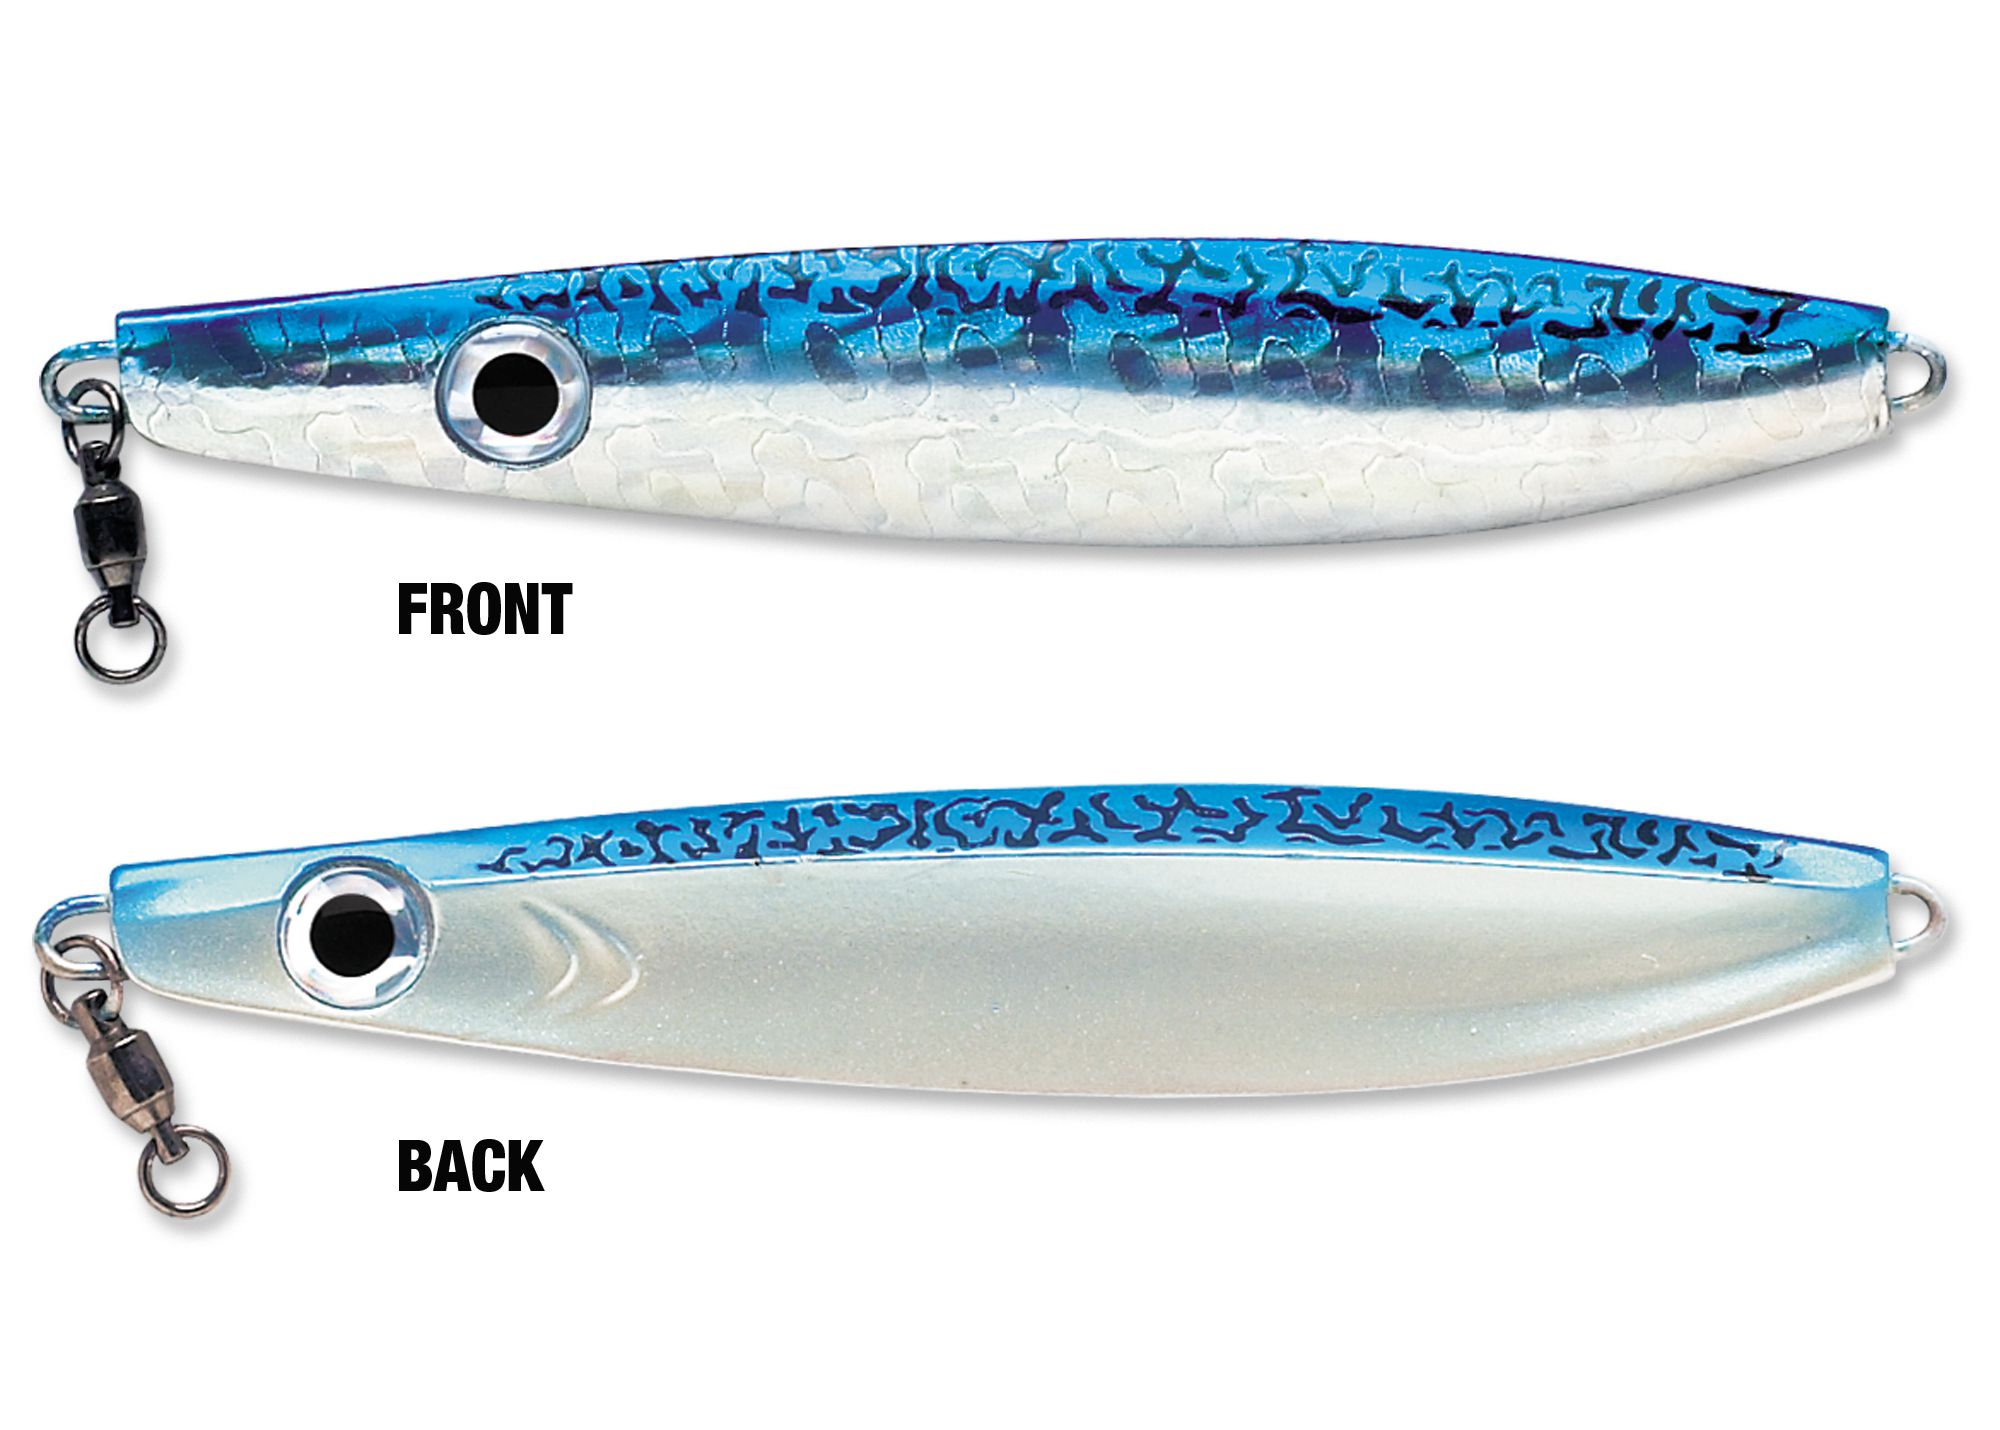 VORTEX SPEED JIG VSJ200 BLUE MACKEREL